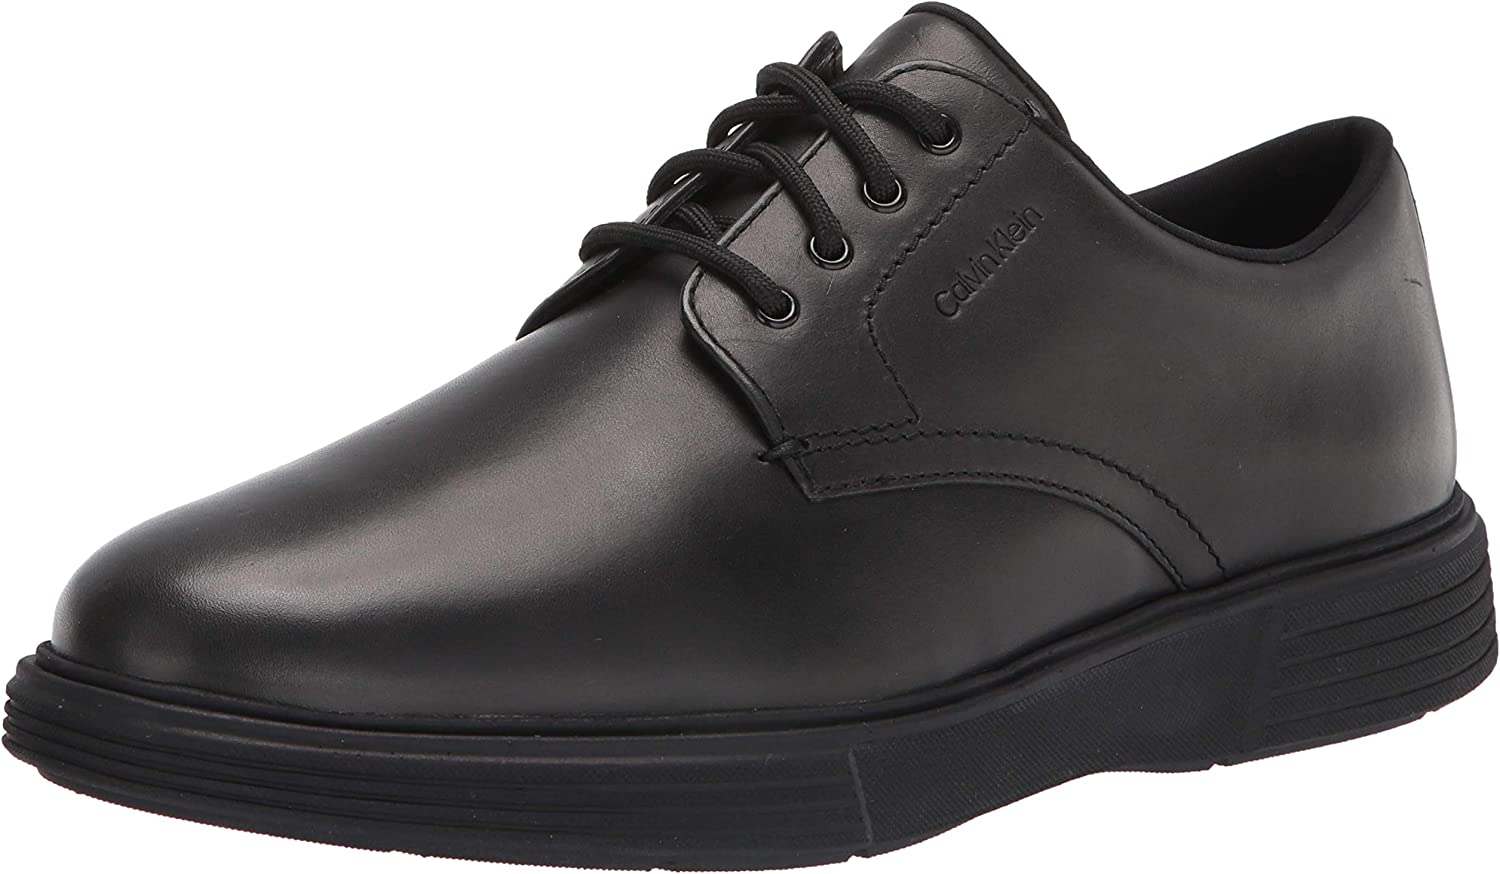 Calvin Klein Men's Max 47% OFF Oxford Free shipping on posting reviews Fullmer